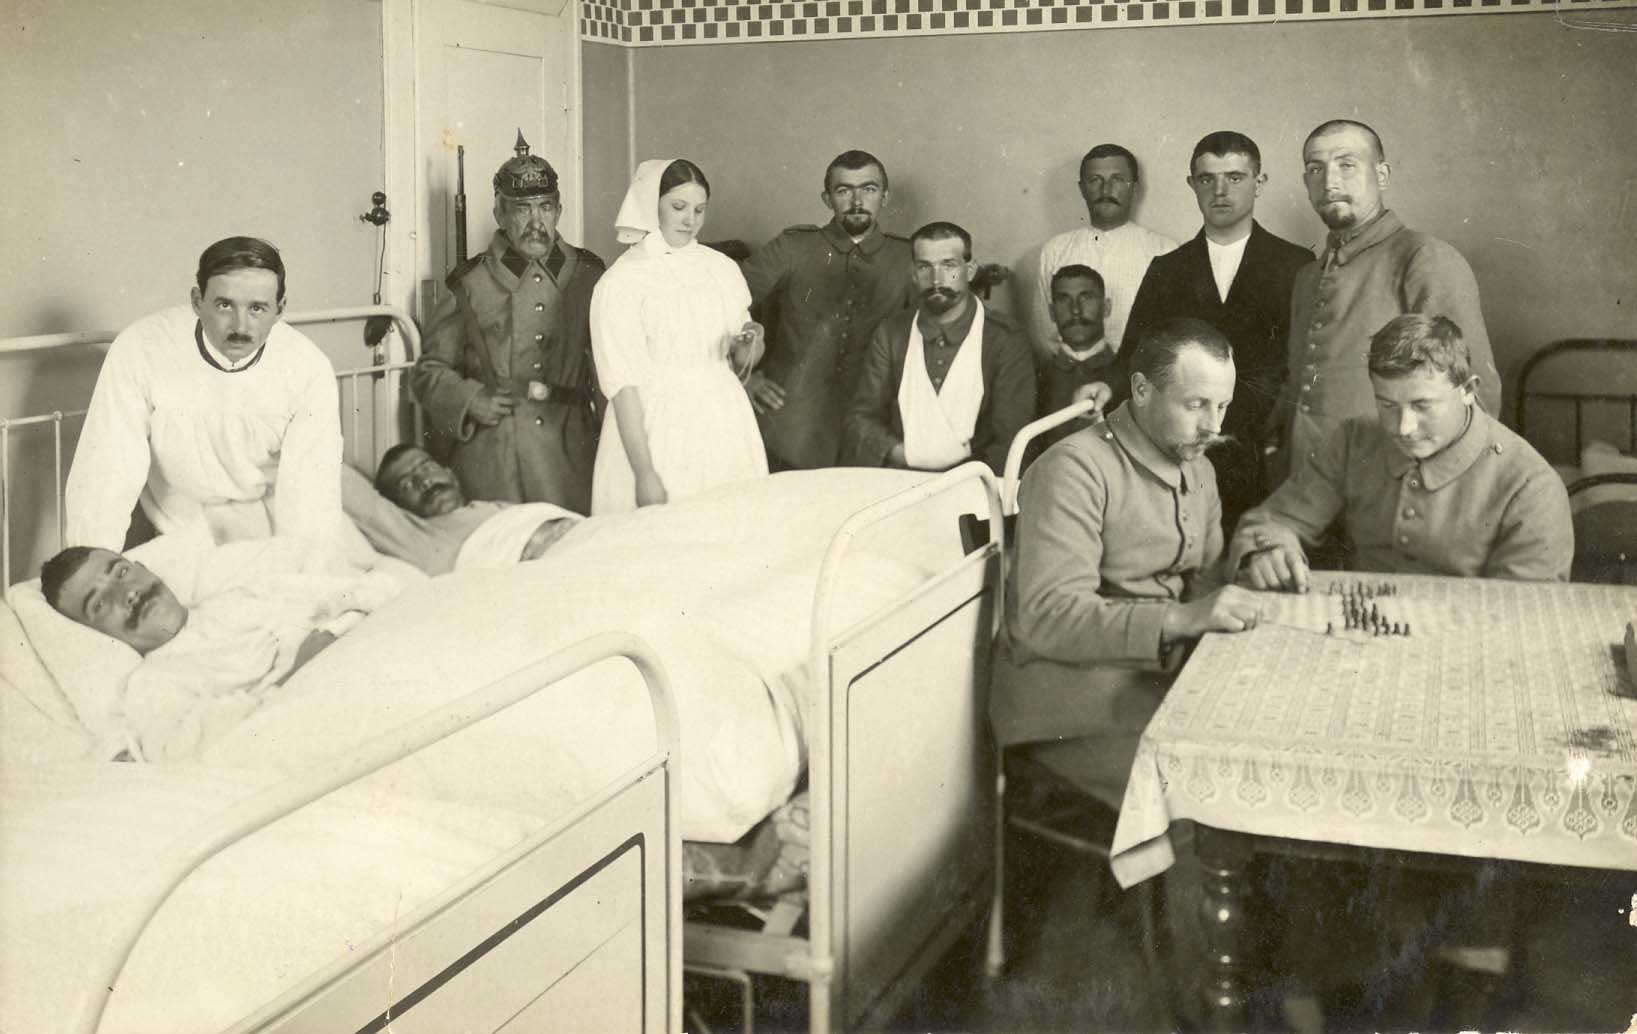 Wounded soldiers in a military hospital in Strasbourg during the war